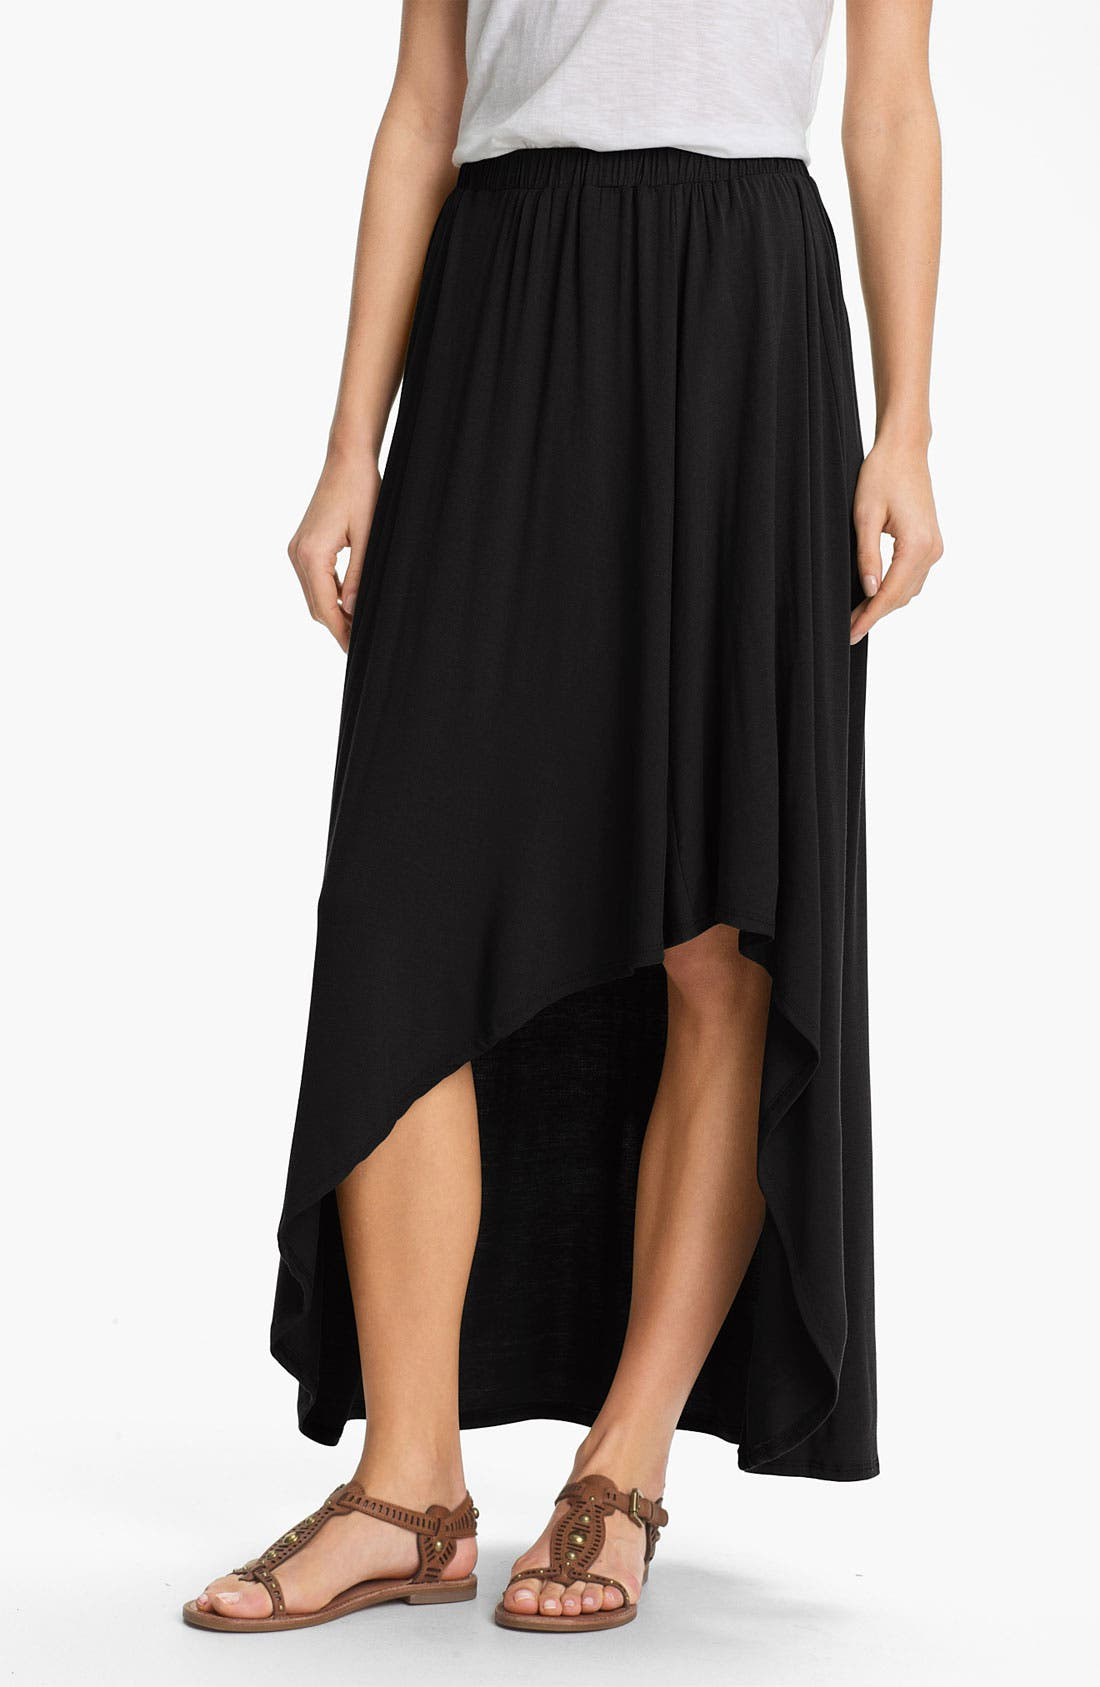 Alternate Image 1 Selected - Bobeau Asymmetrical High/Low Maxi Skirt